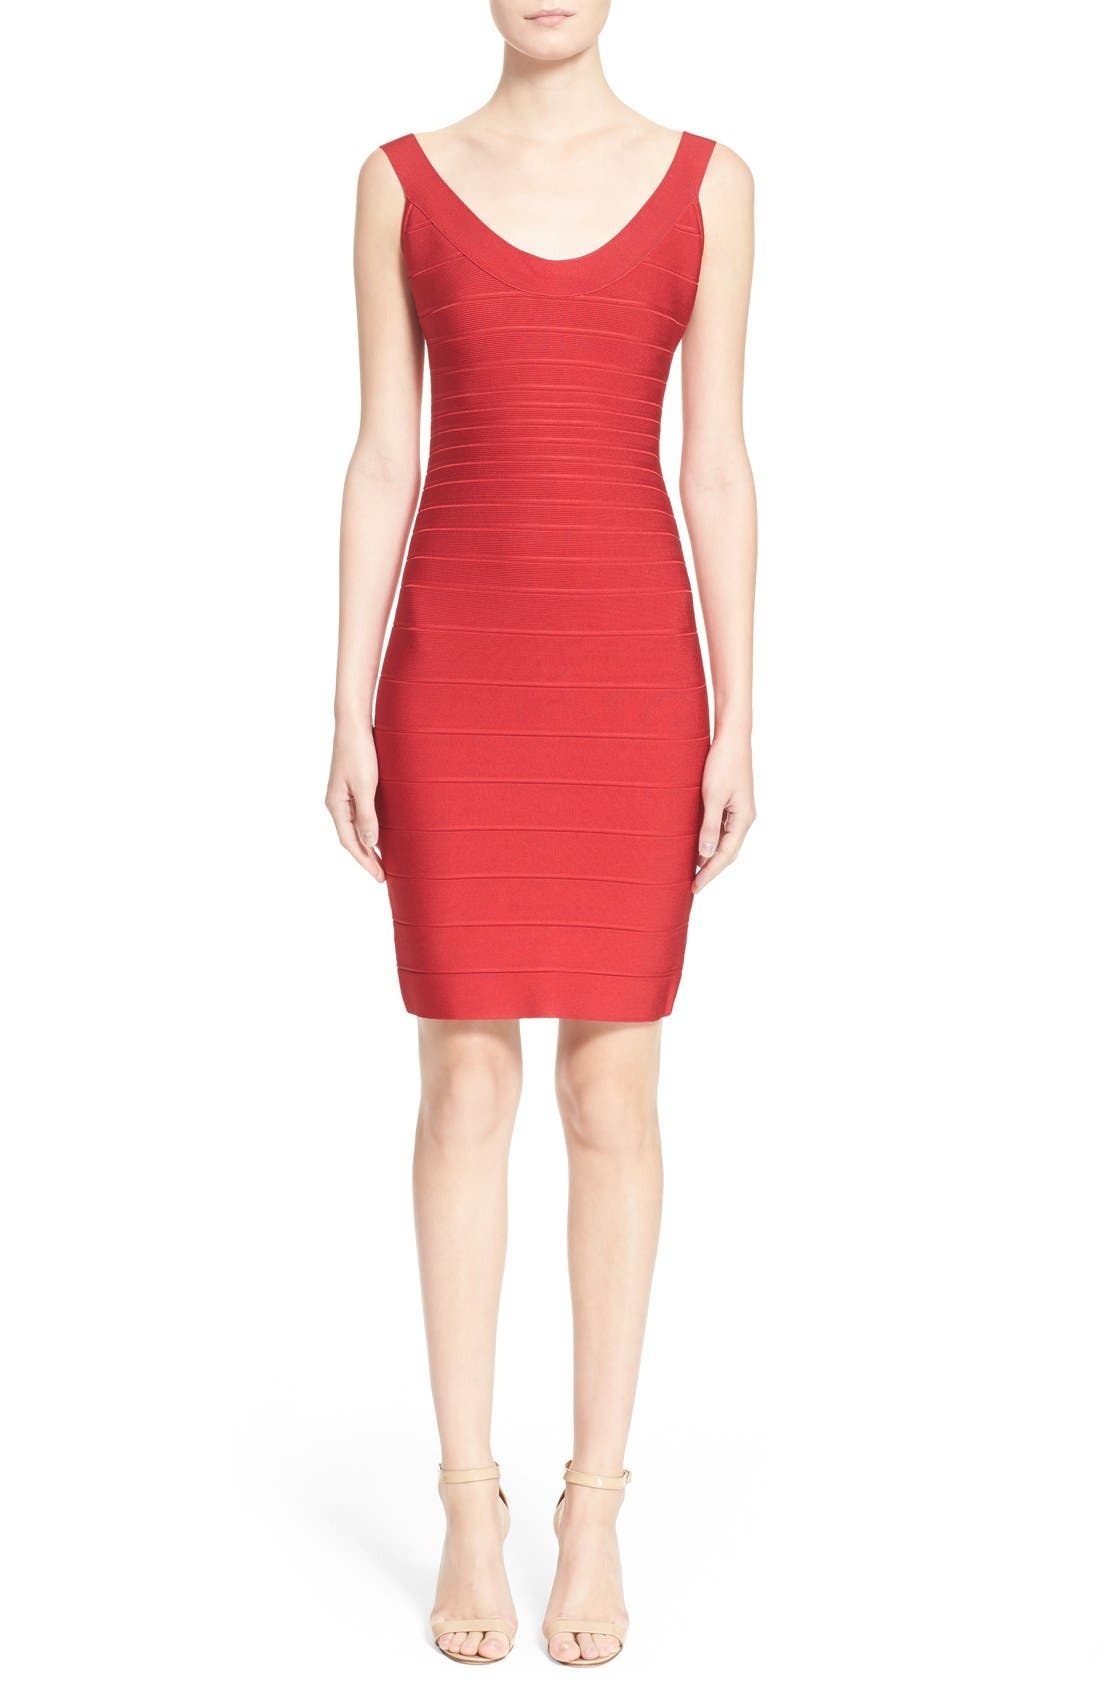 Alternate Image 1 Selected - Herve Leger 'Sydney' U-Neck Bandage Dress